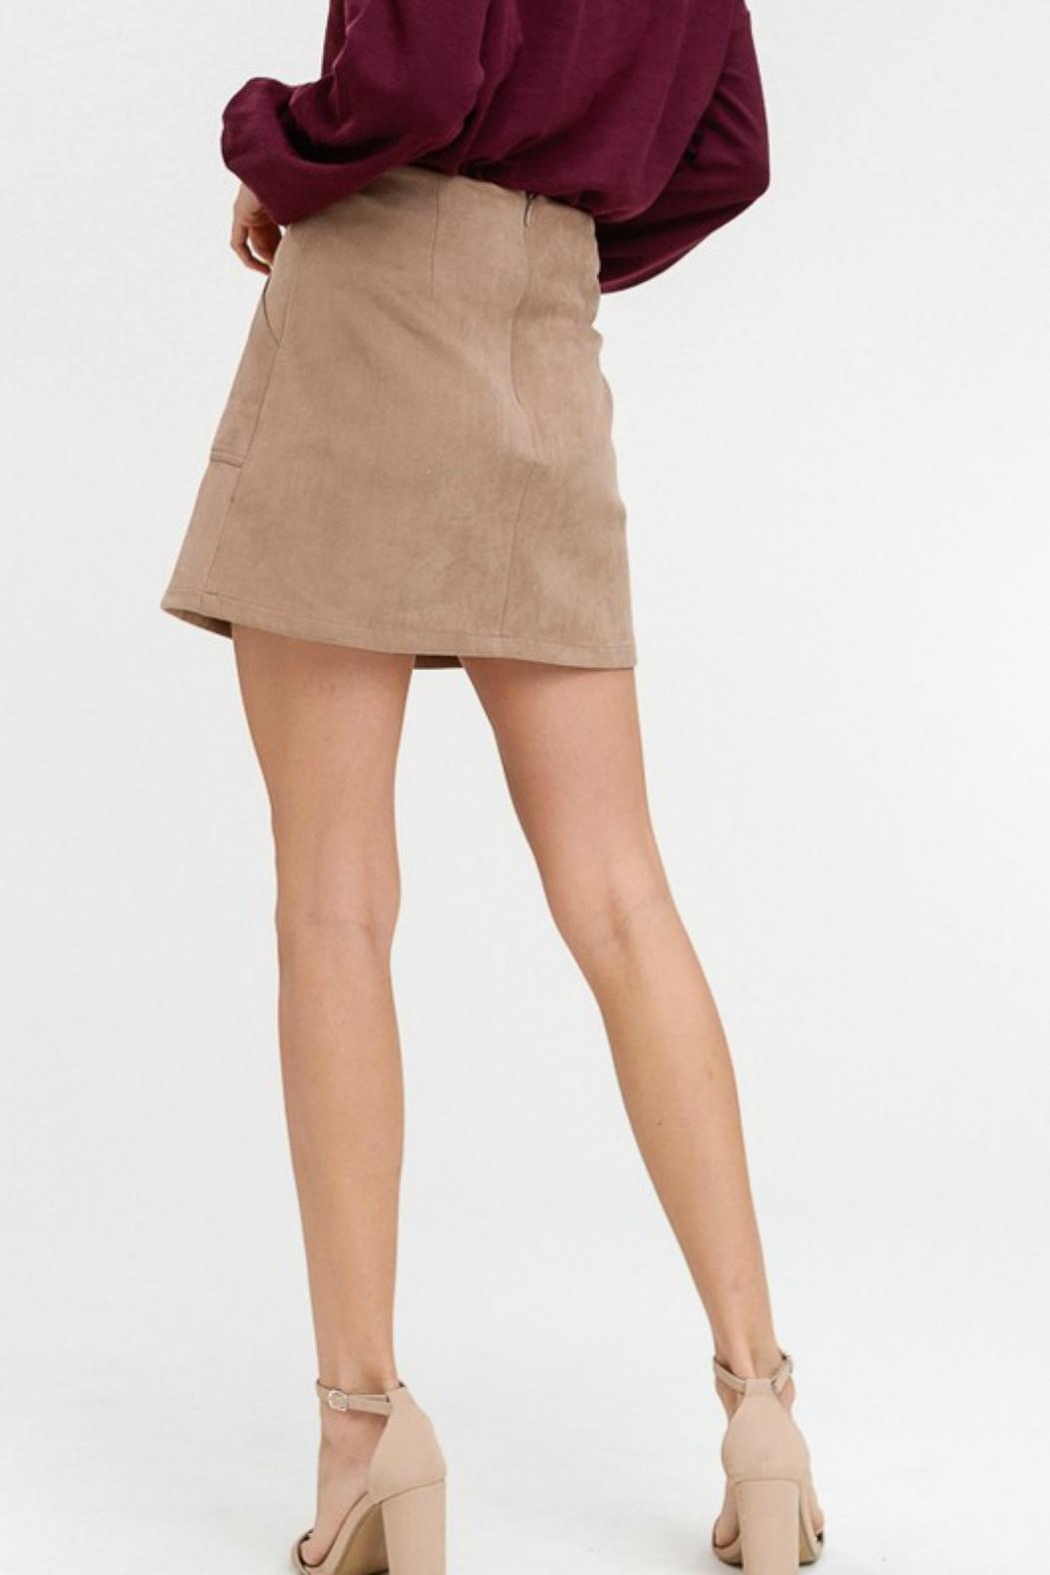 Pretty Little Things Suede A-Line Skirt - Front Full Image